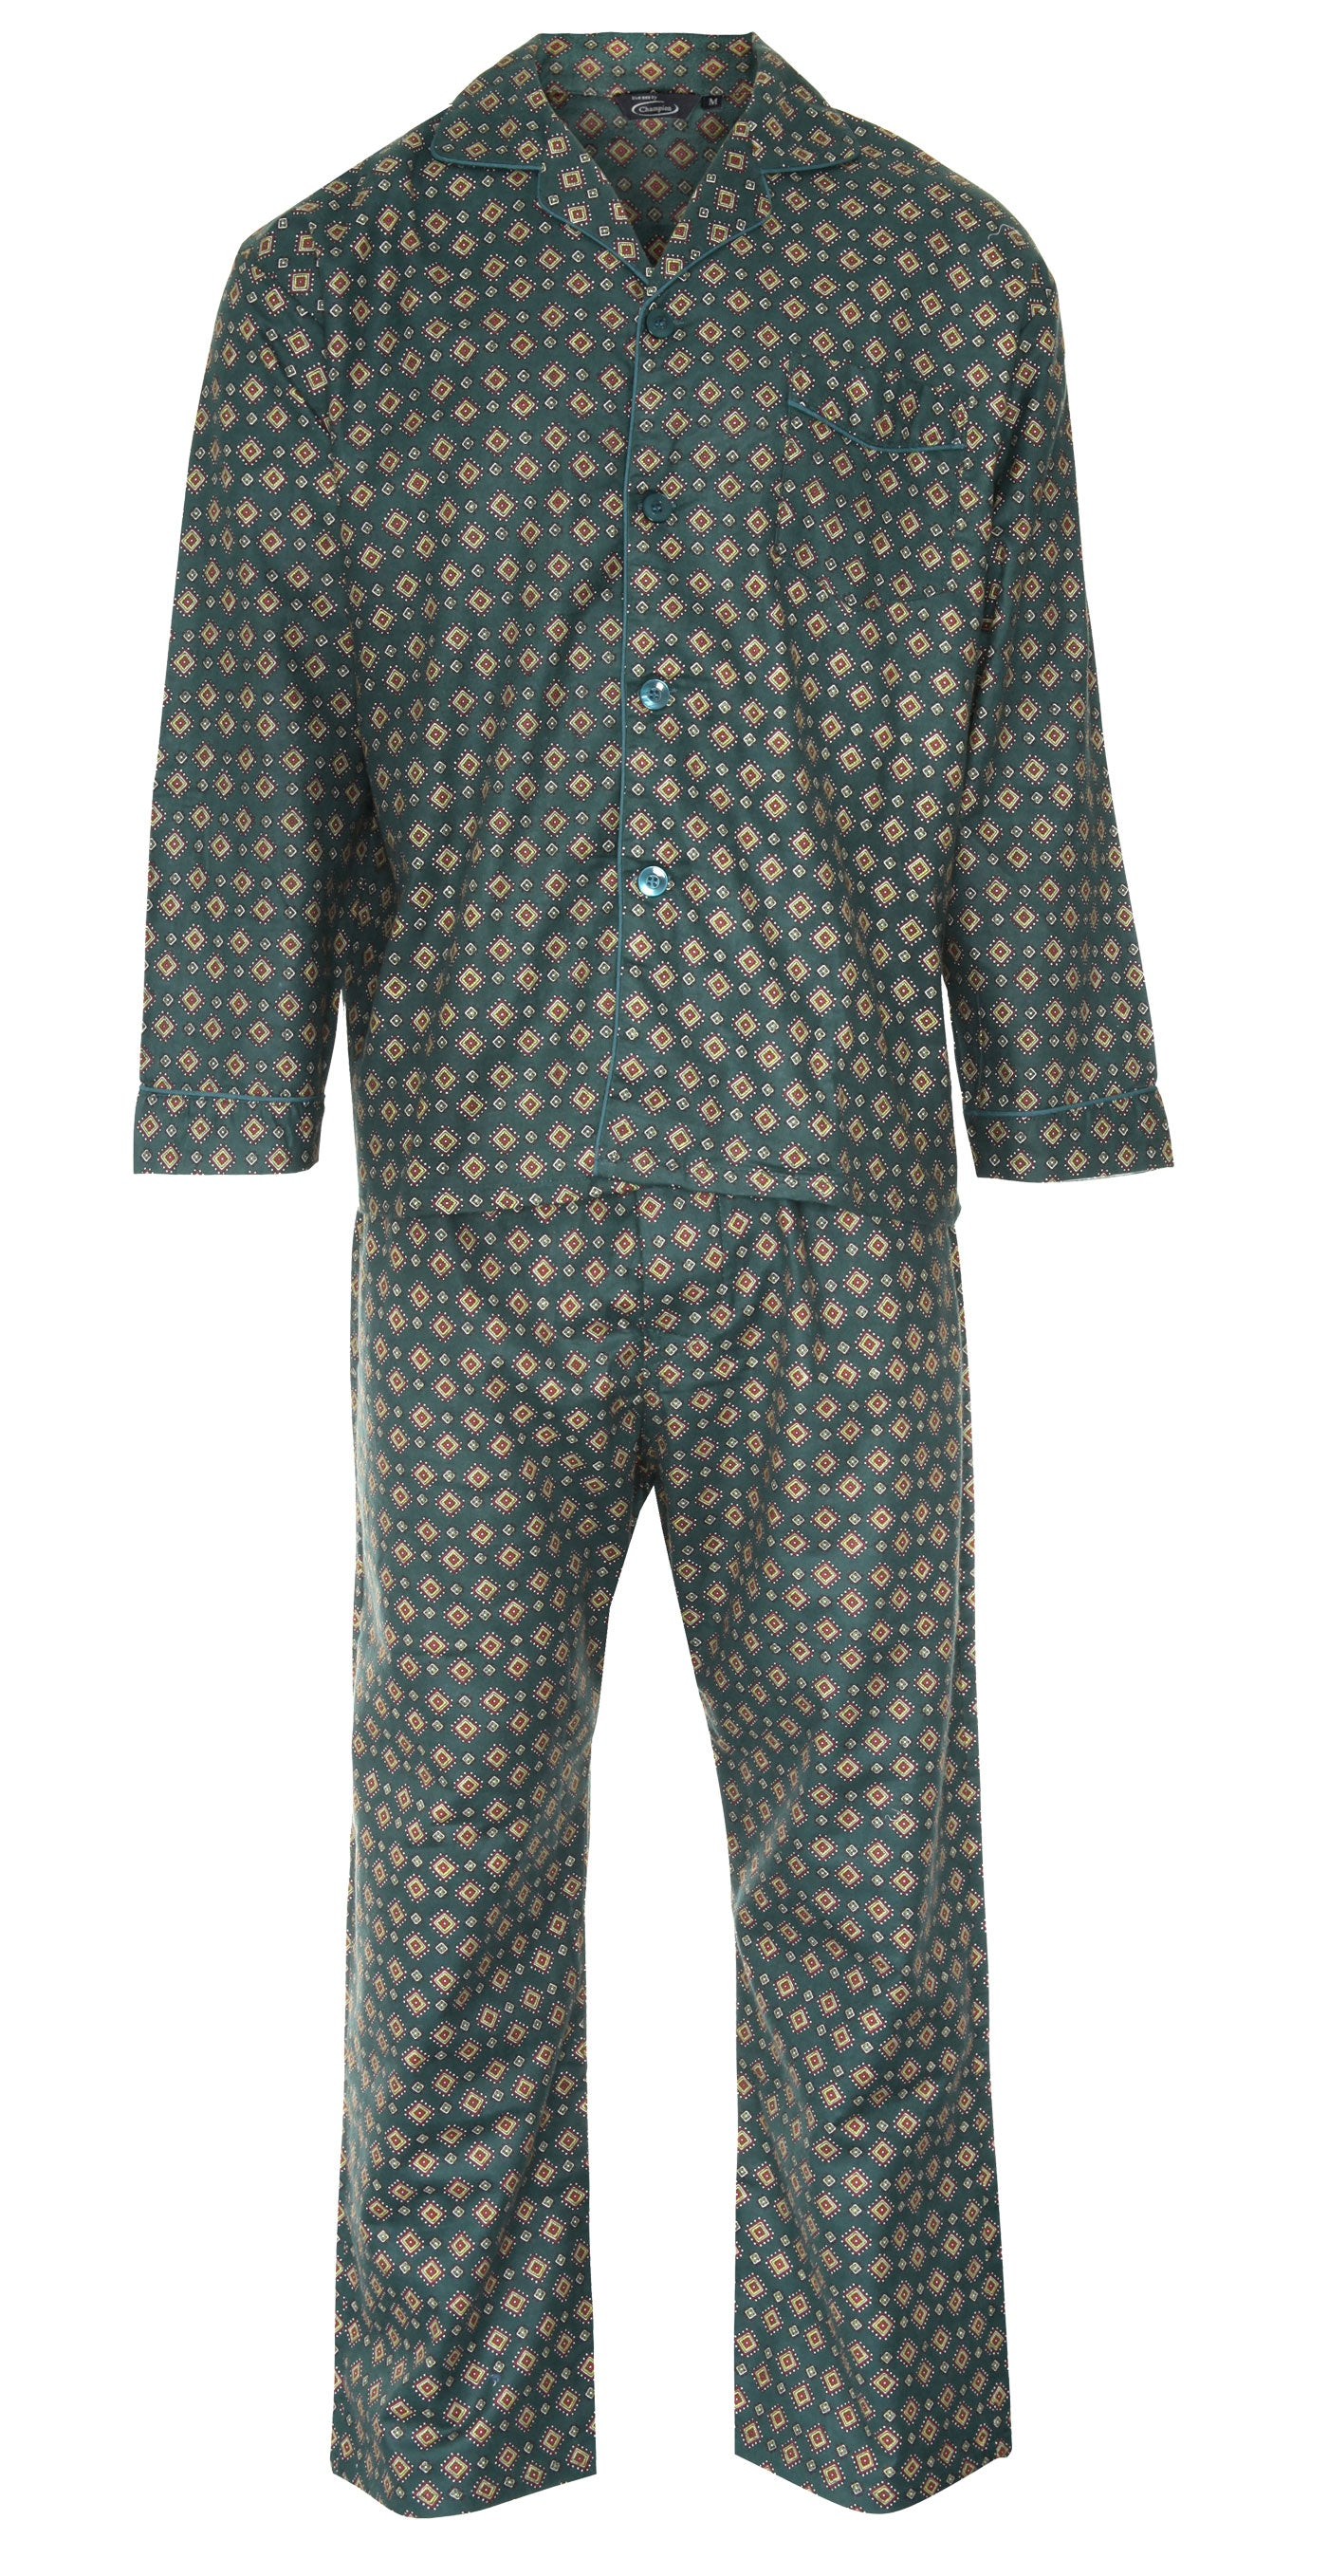 froent green pair of pyjamas by champion blue sea pyjamas all pure cotton